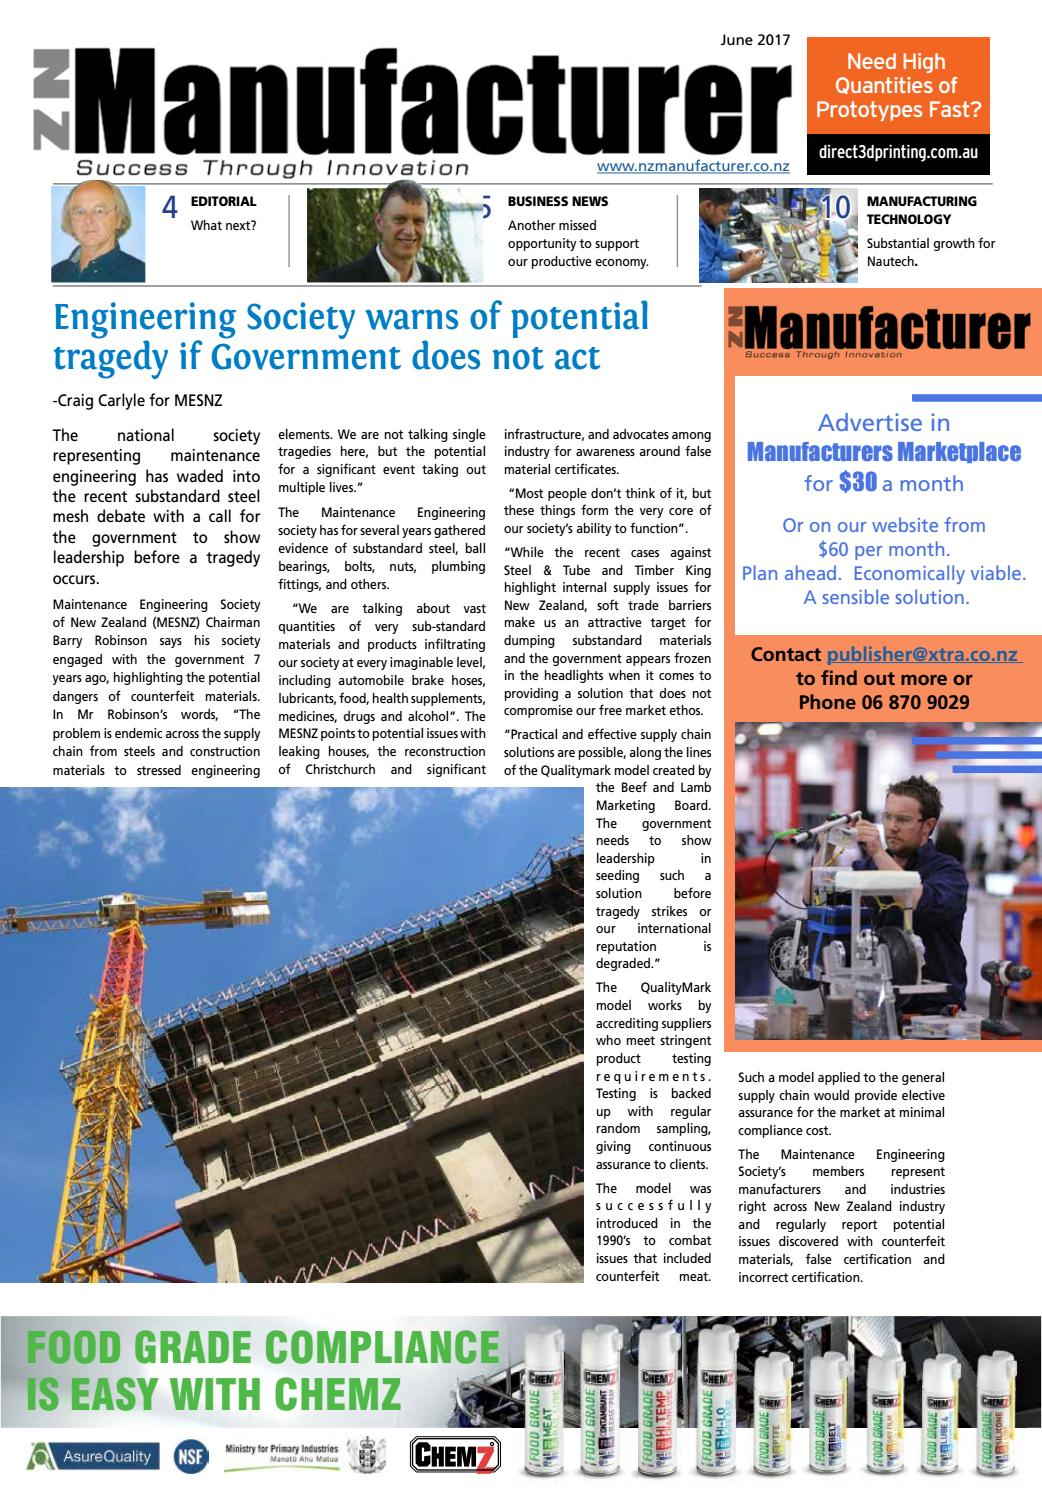 NZ Manufacturer June 2017 by Media Hawkes Bay Limited - issuu